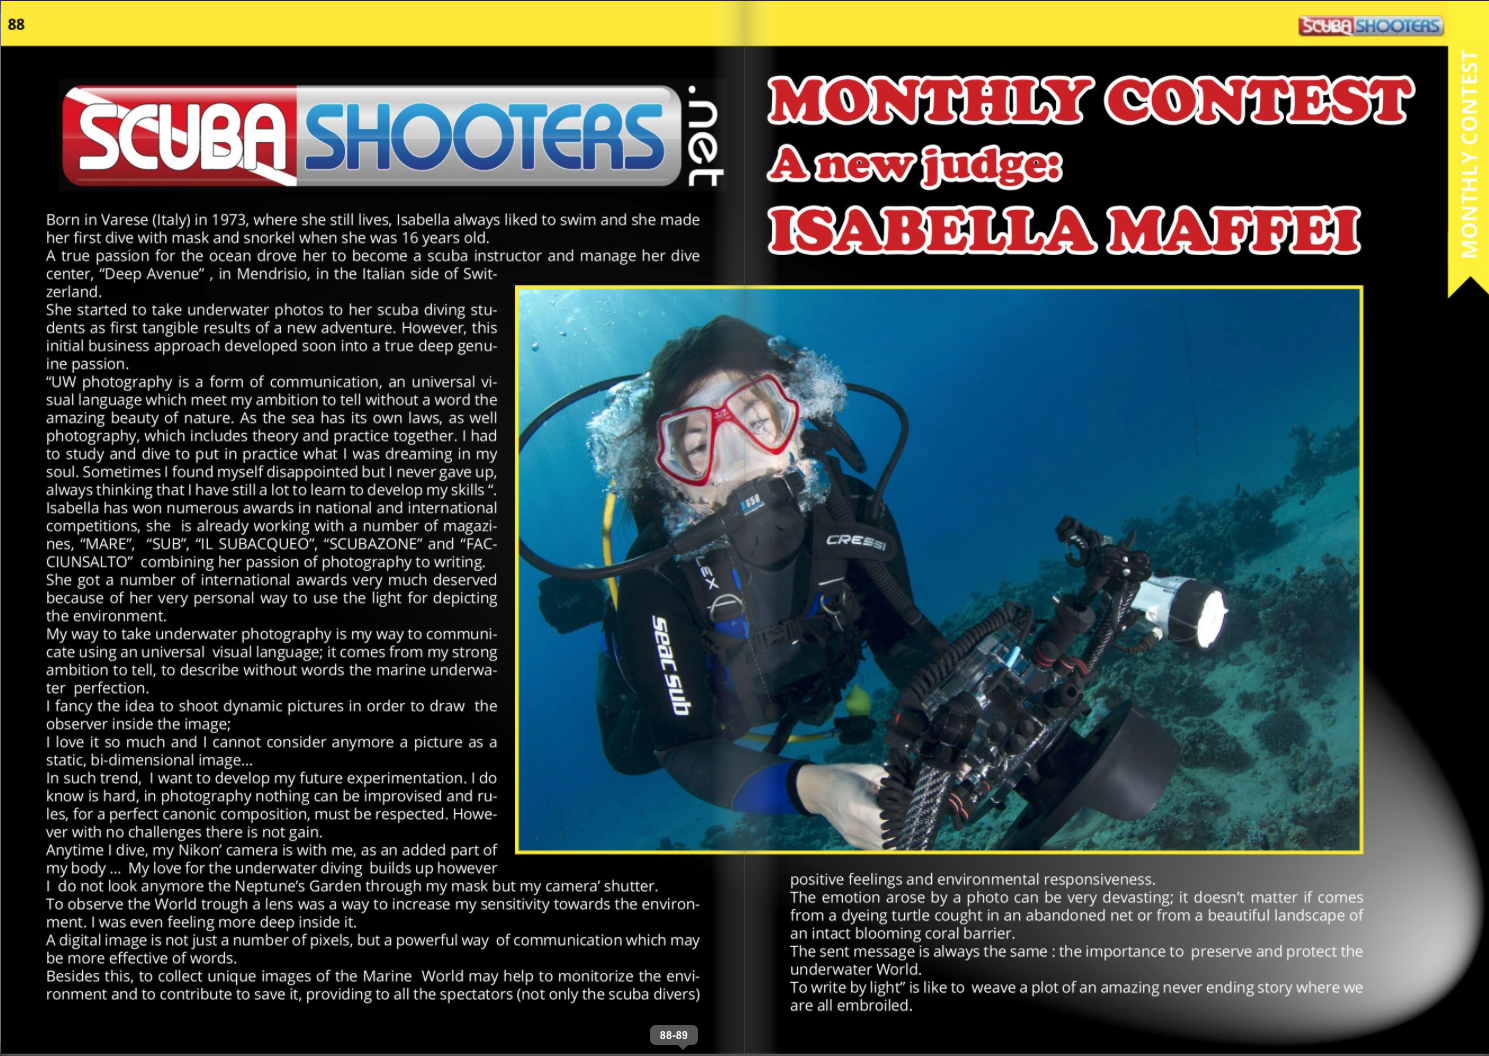 Isabella Maffei, monthly judge of scubashooters.net contest